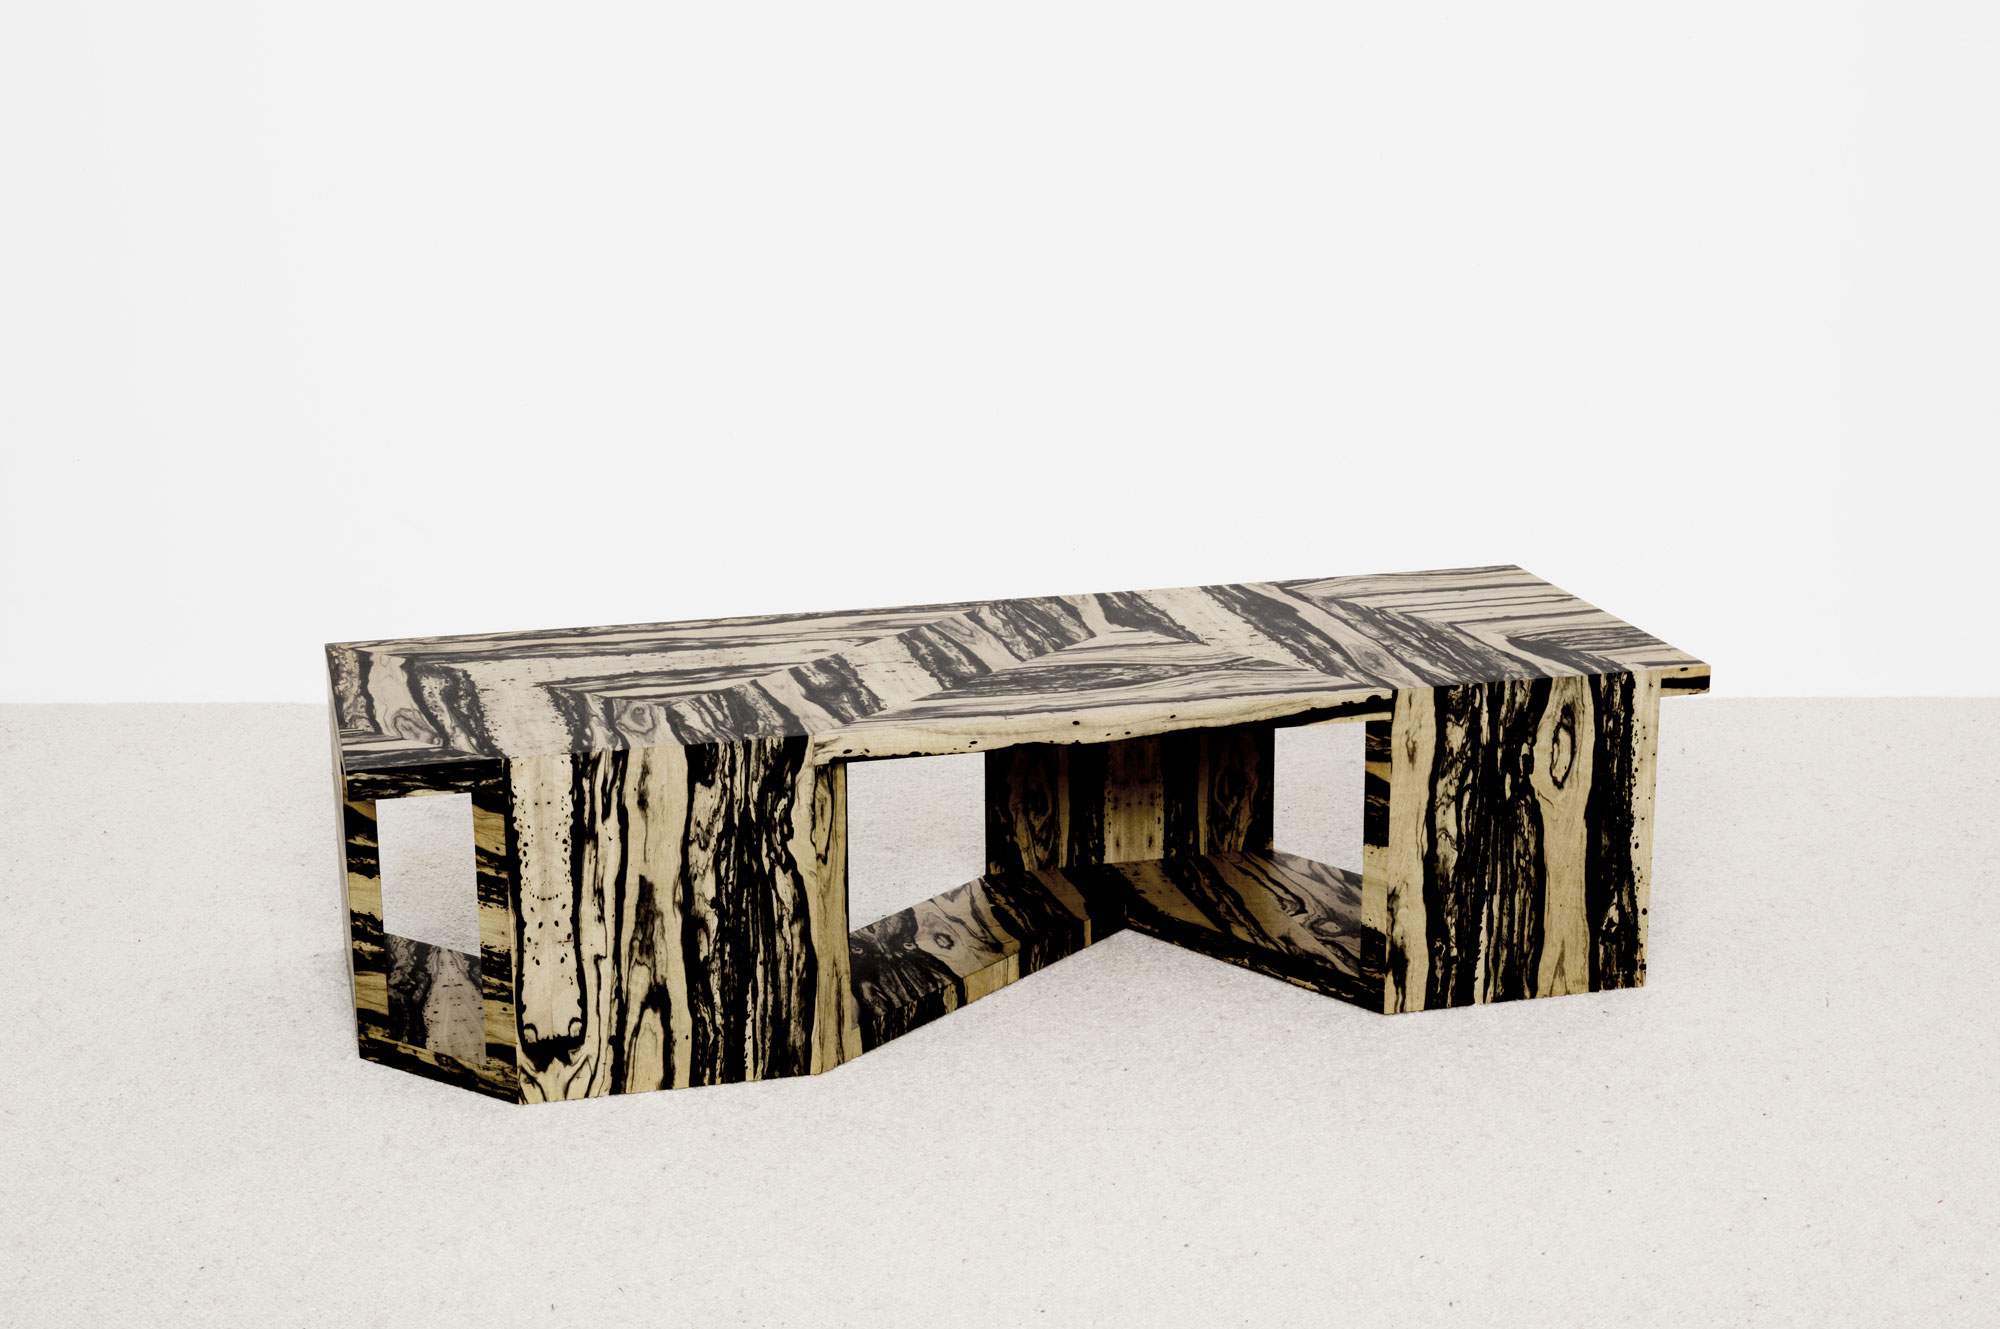 Table Basse Zer - Christophe Delcourt